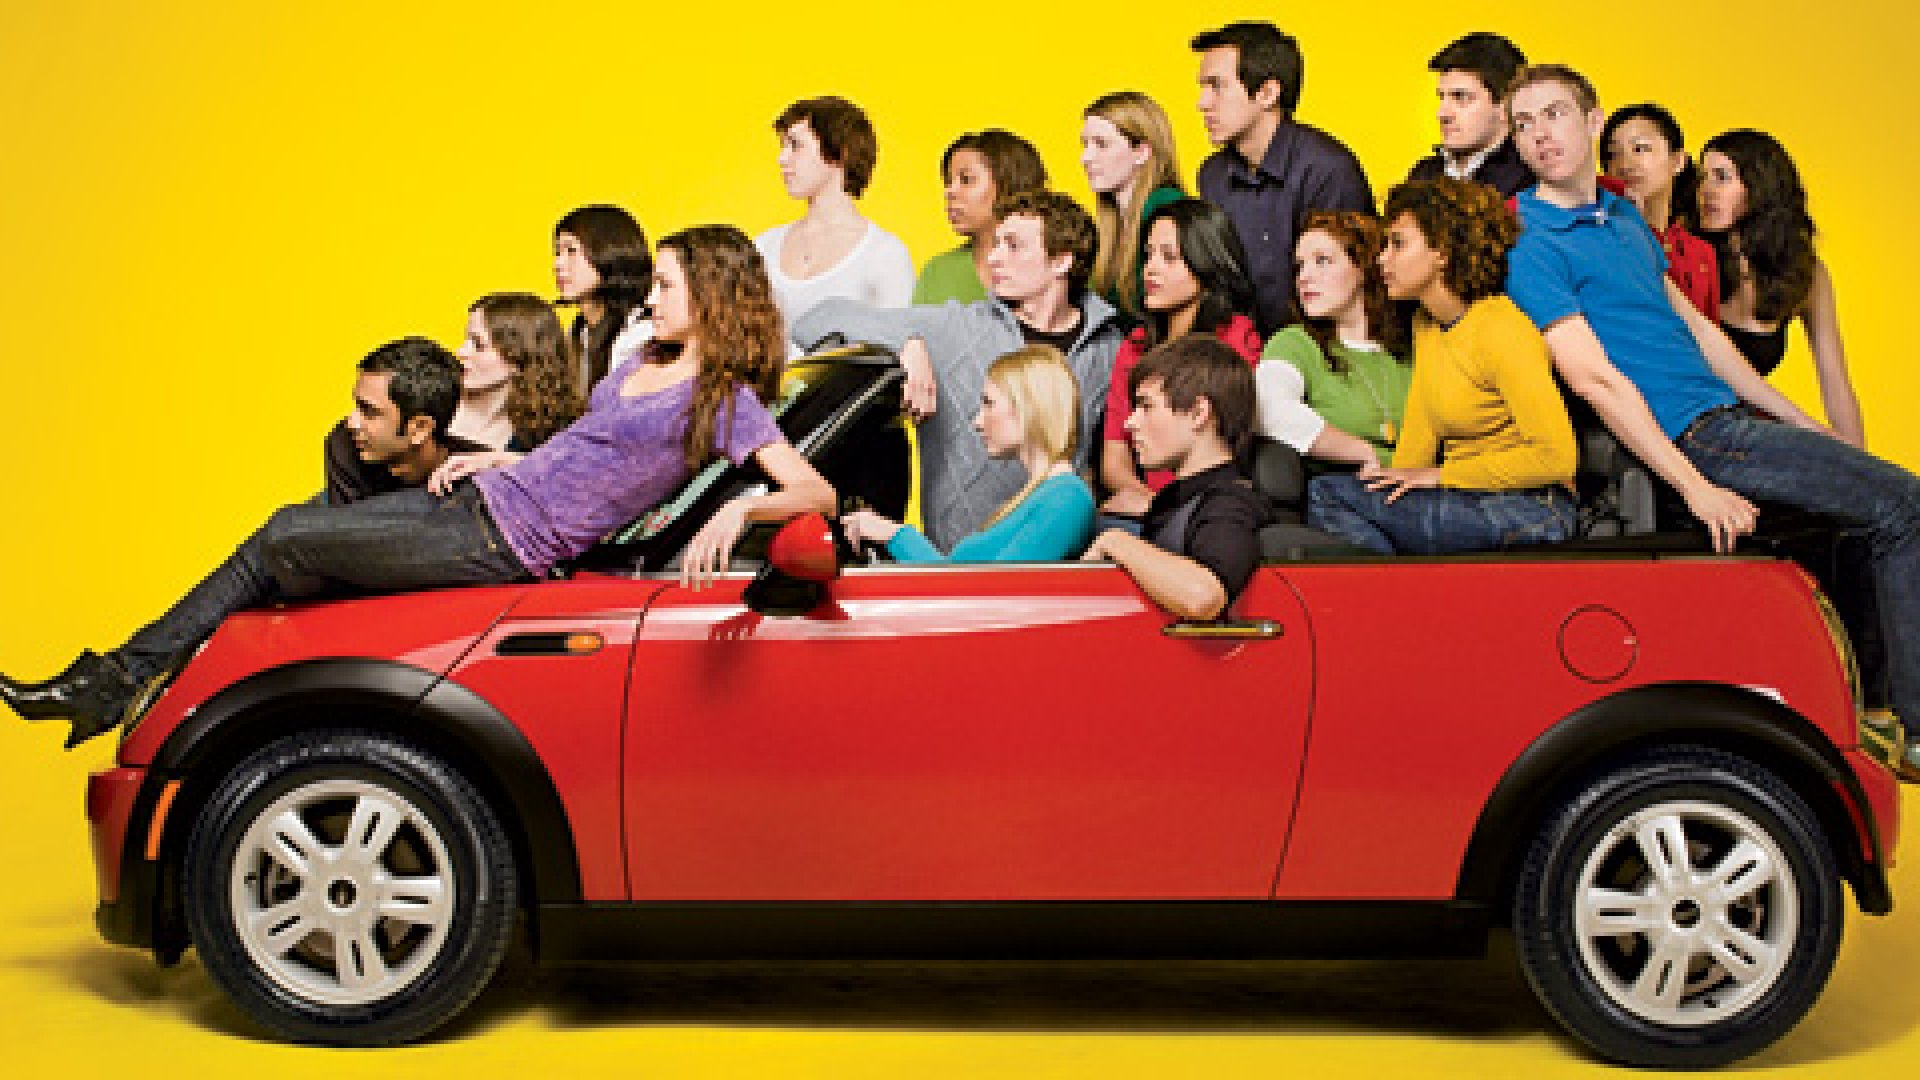 <strong>CLIMB ON IN: </strong>Most companies won't rent to the under-21 set. Zipcar's approach? No problem.